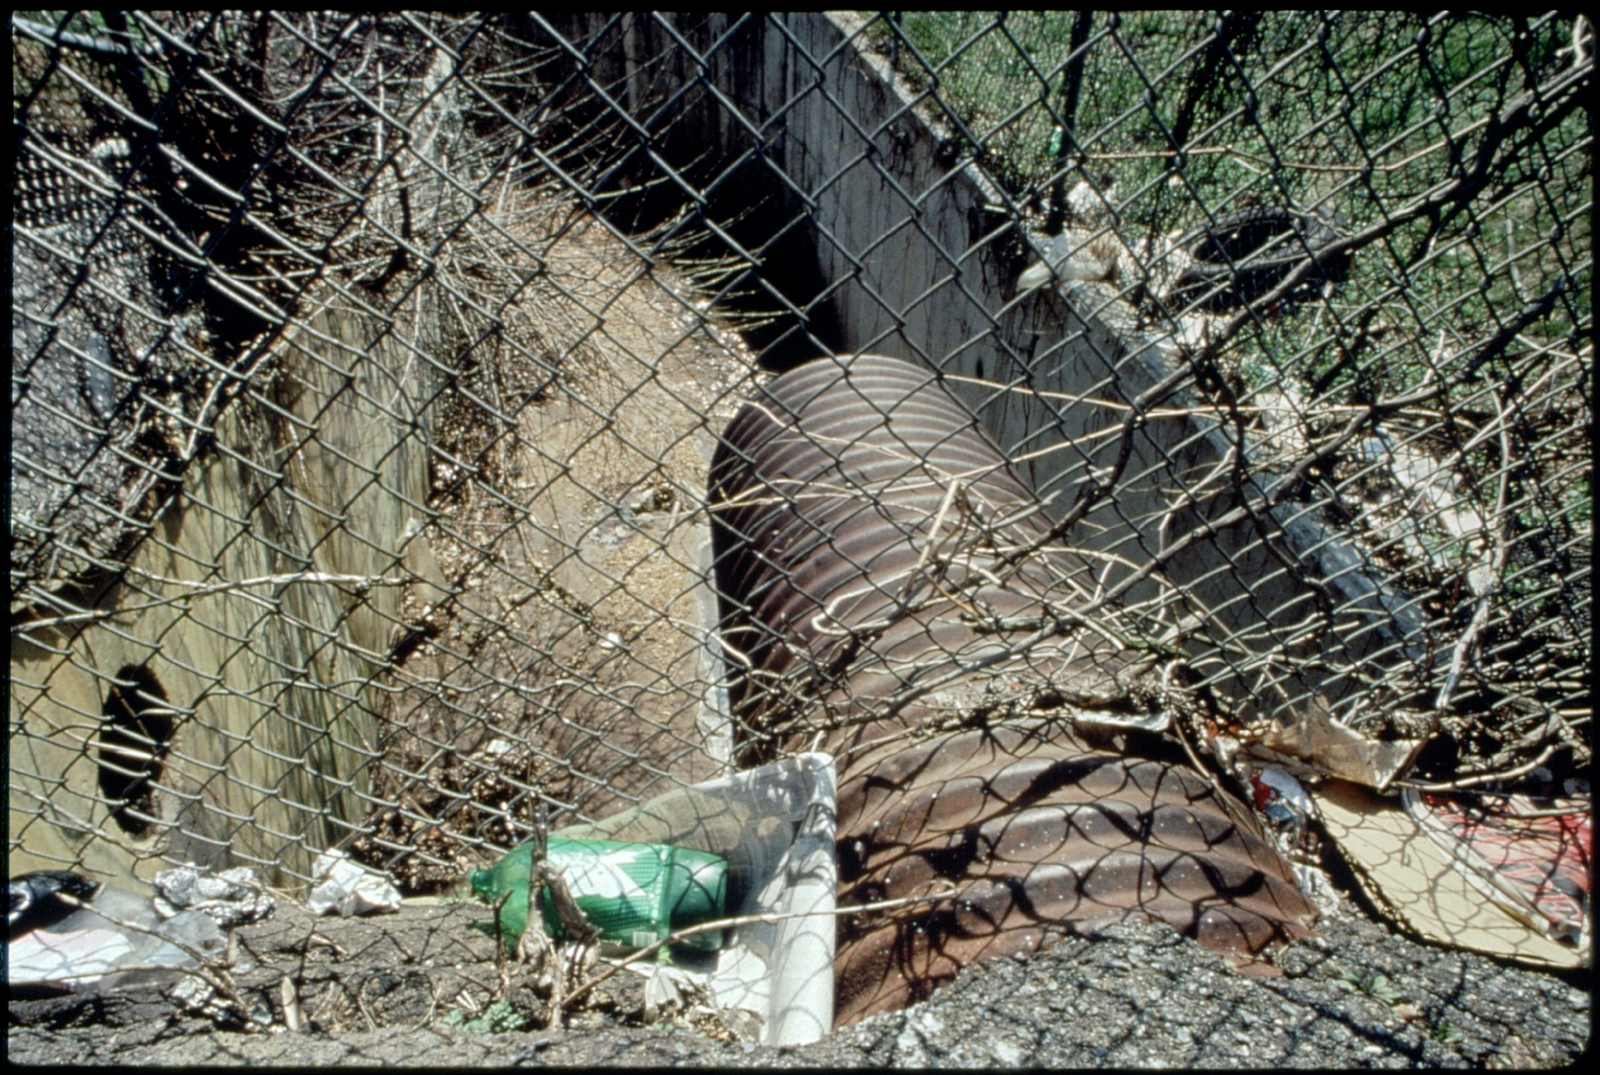 Library of Environmental Images, Office of Research and Development (ORD), September 1996 - Pollution Prevention - Debris near pipe